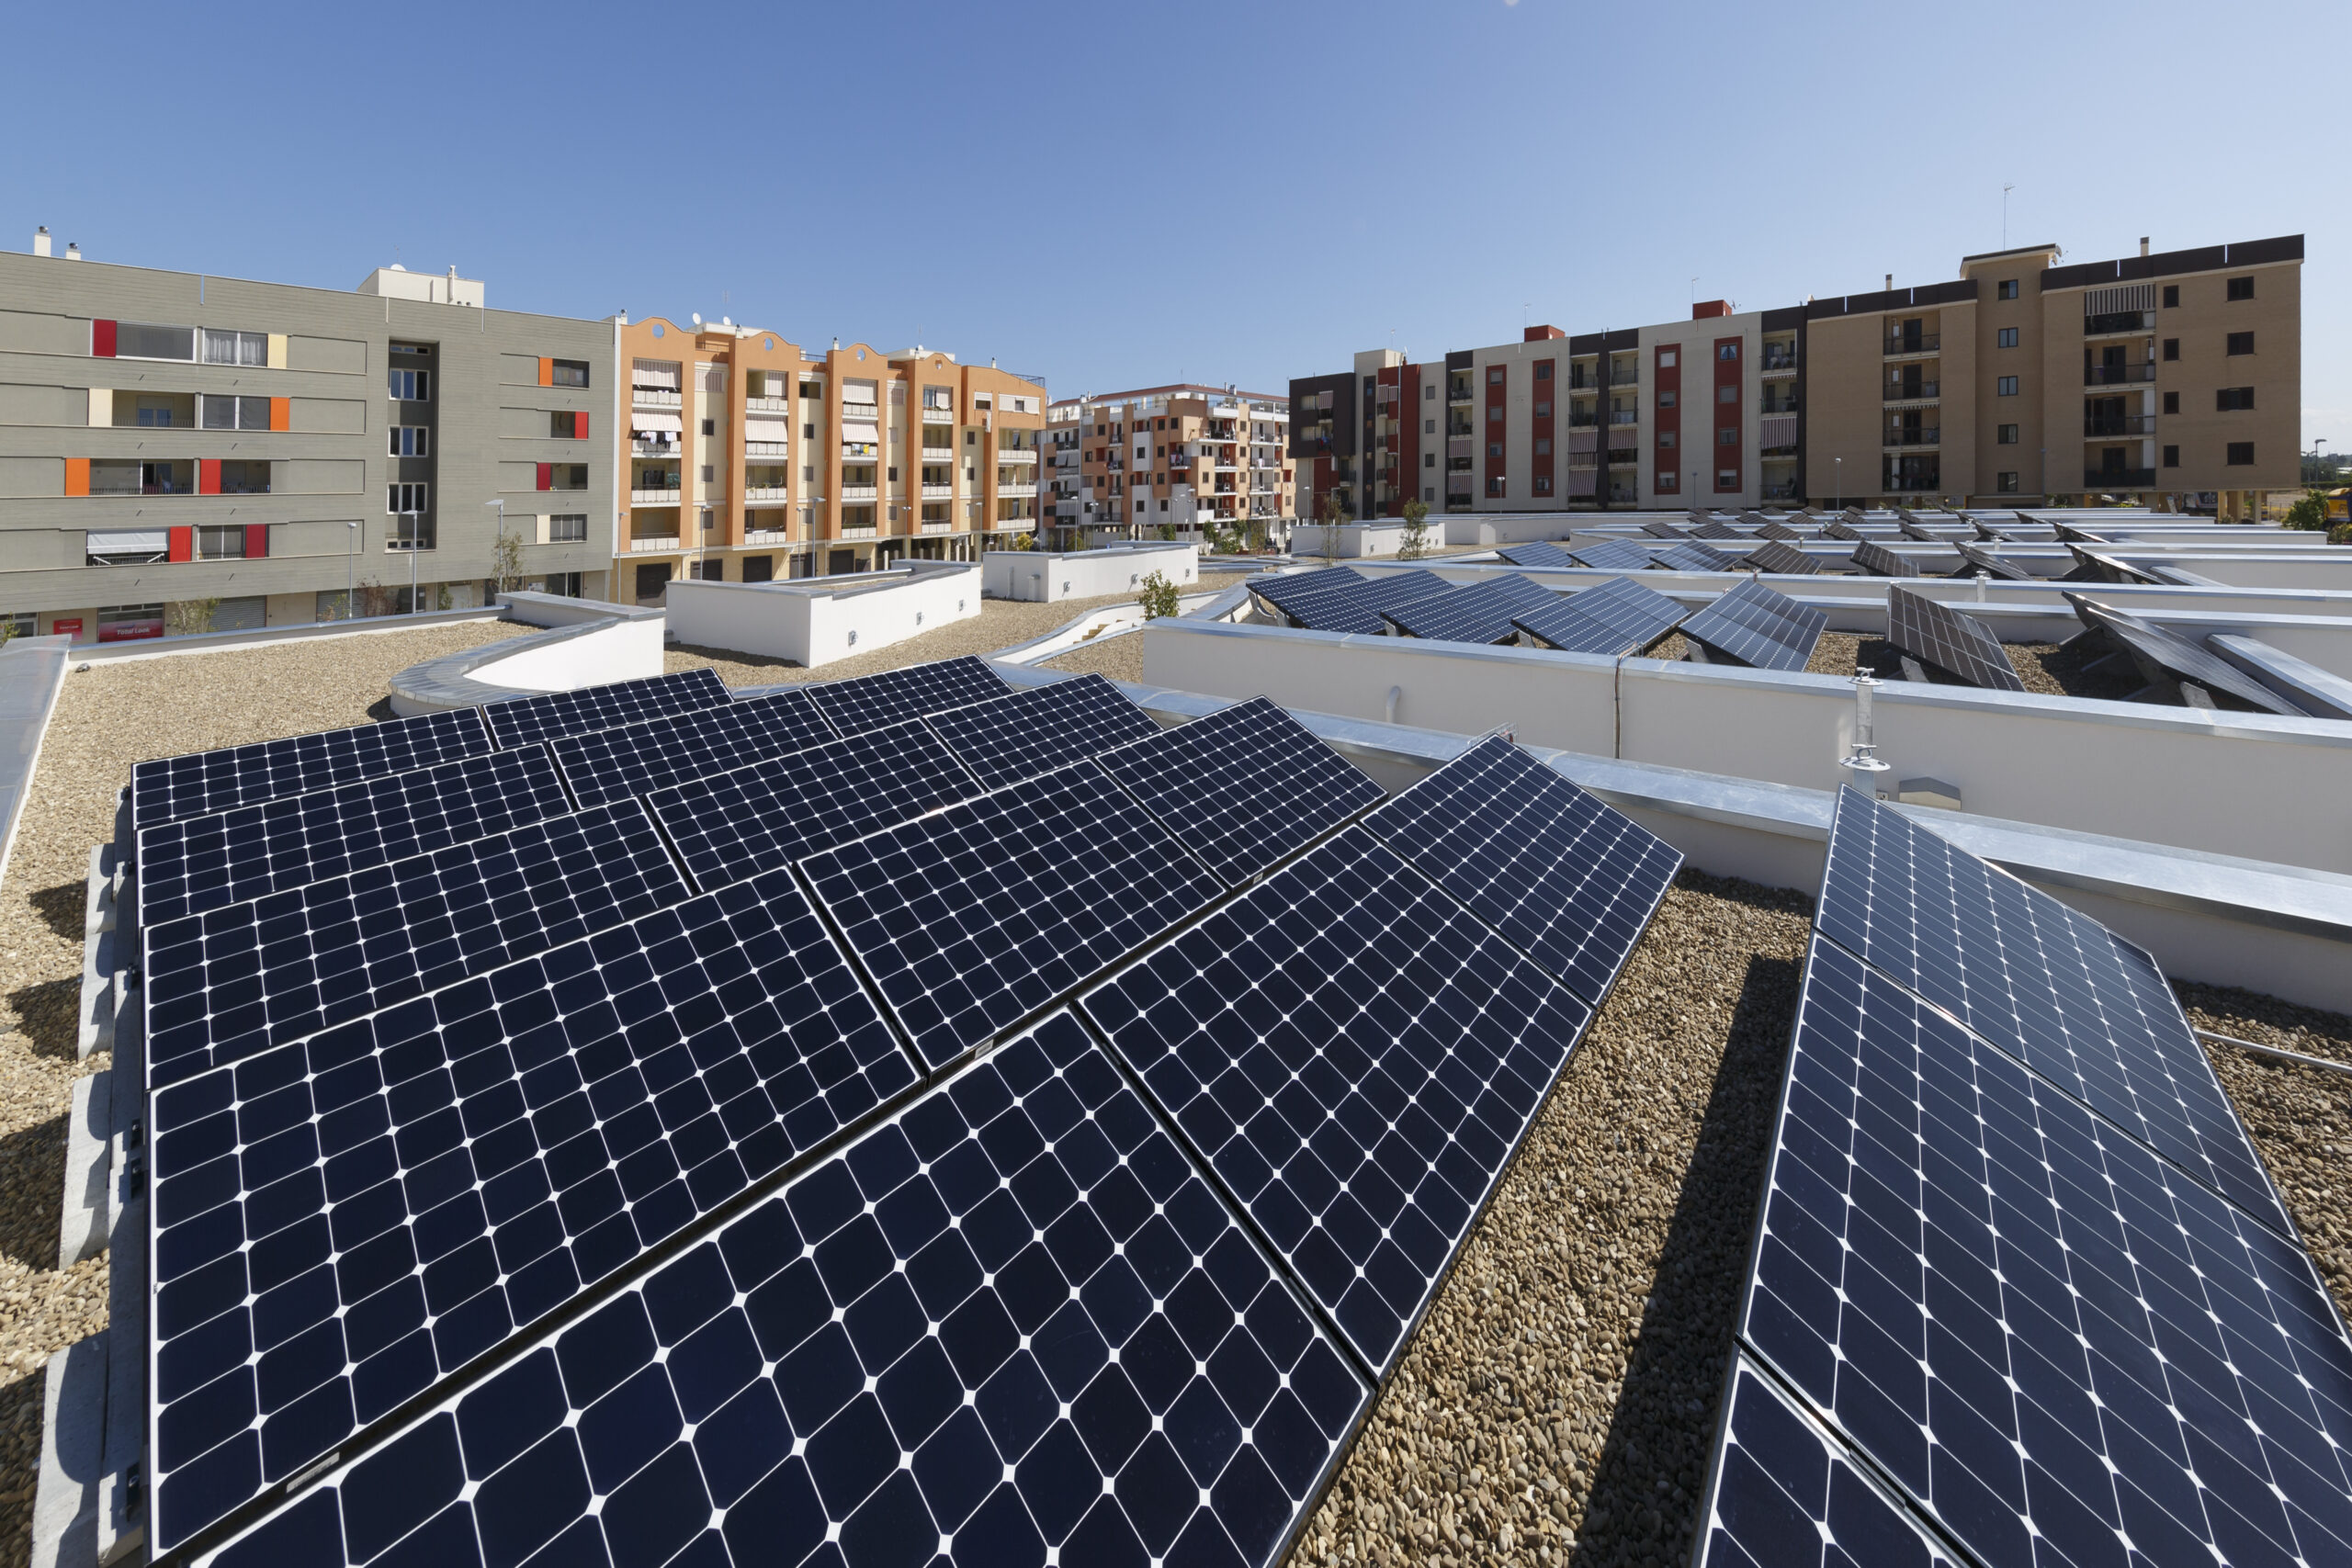 Solar panels installed on the apartment roof with surrounding apartments